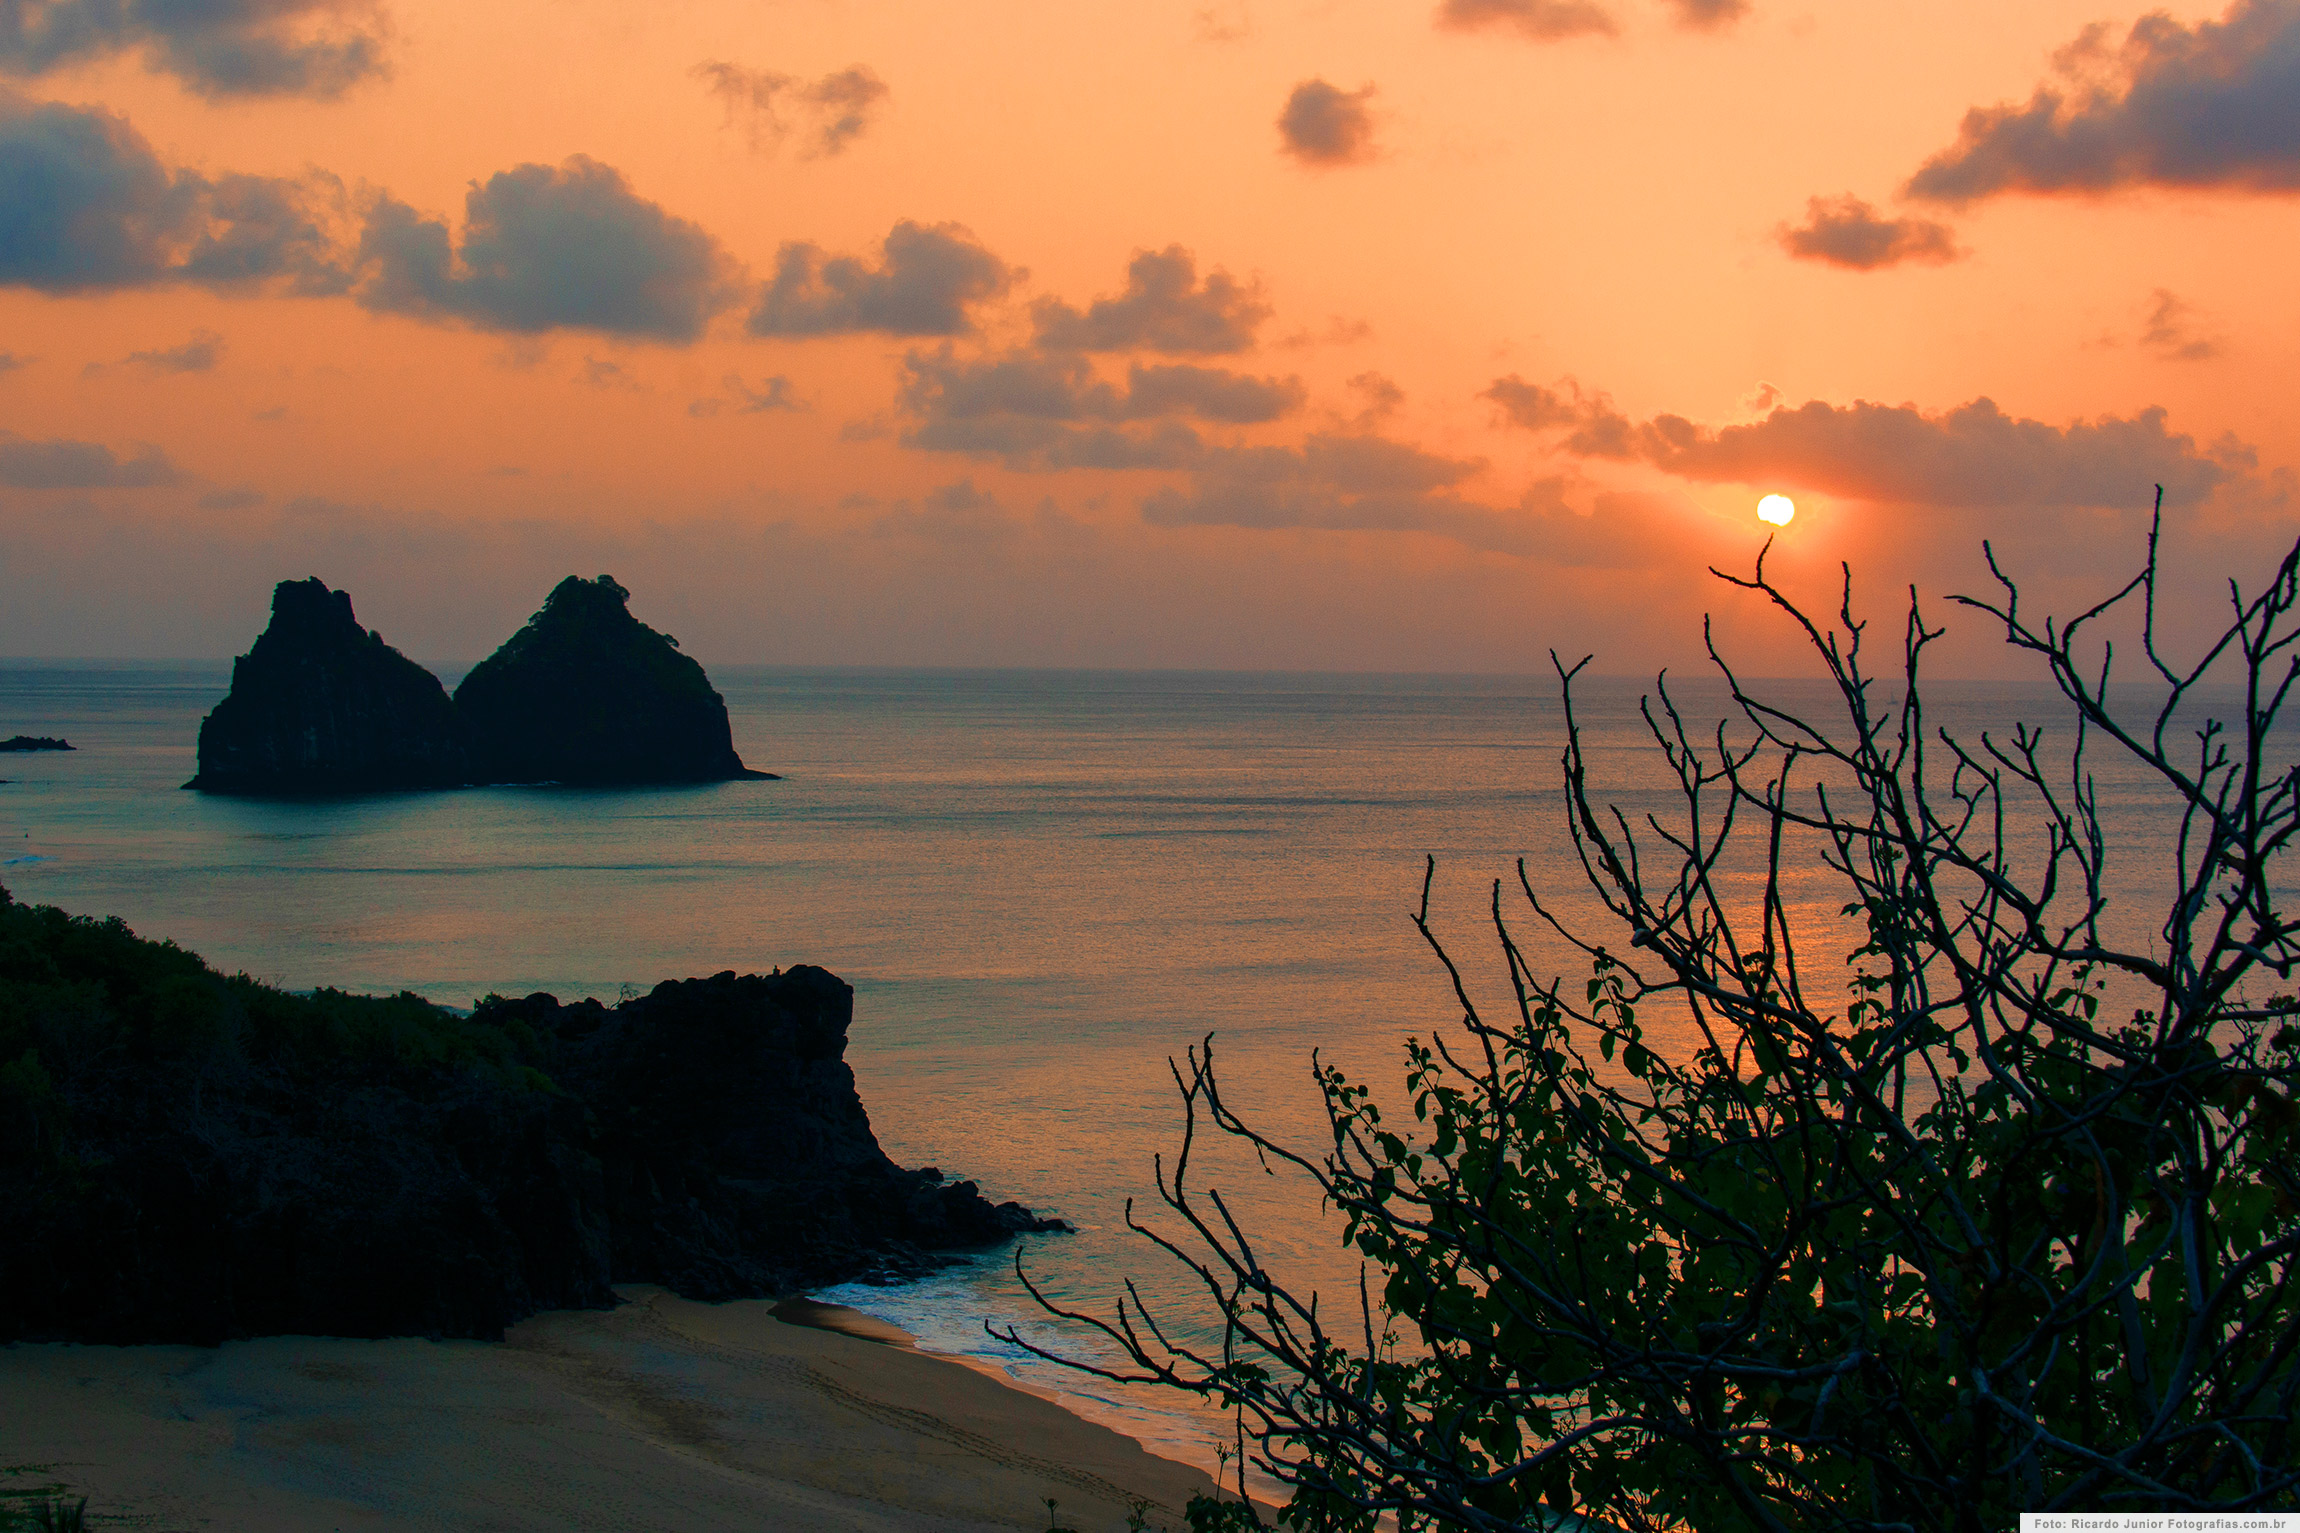 foto-ricardo-junior-mirante-do-boldro-por-do-sol-em-fernando-de-noronha